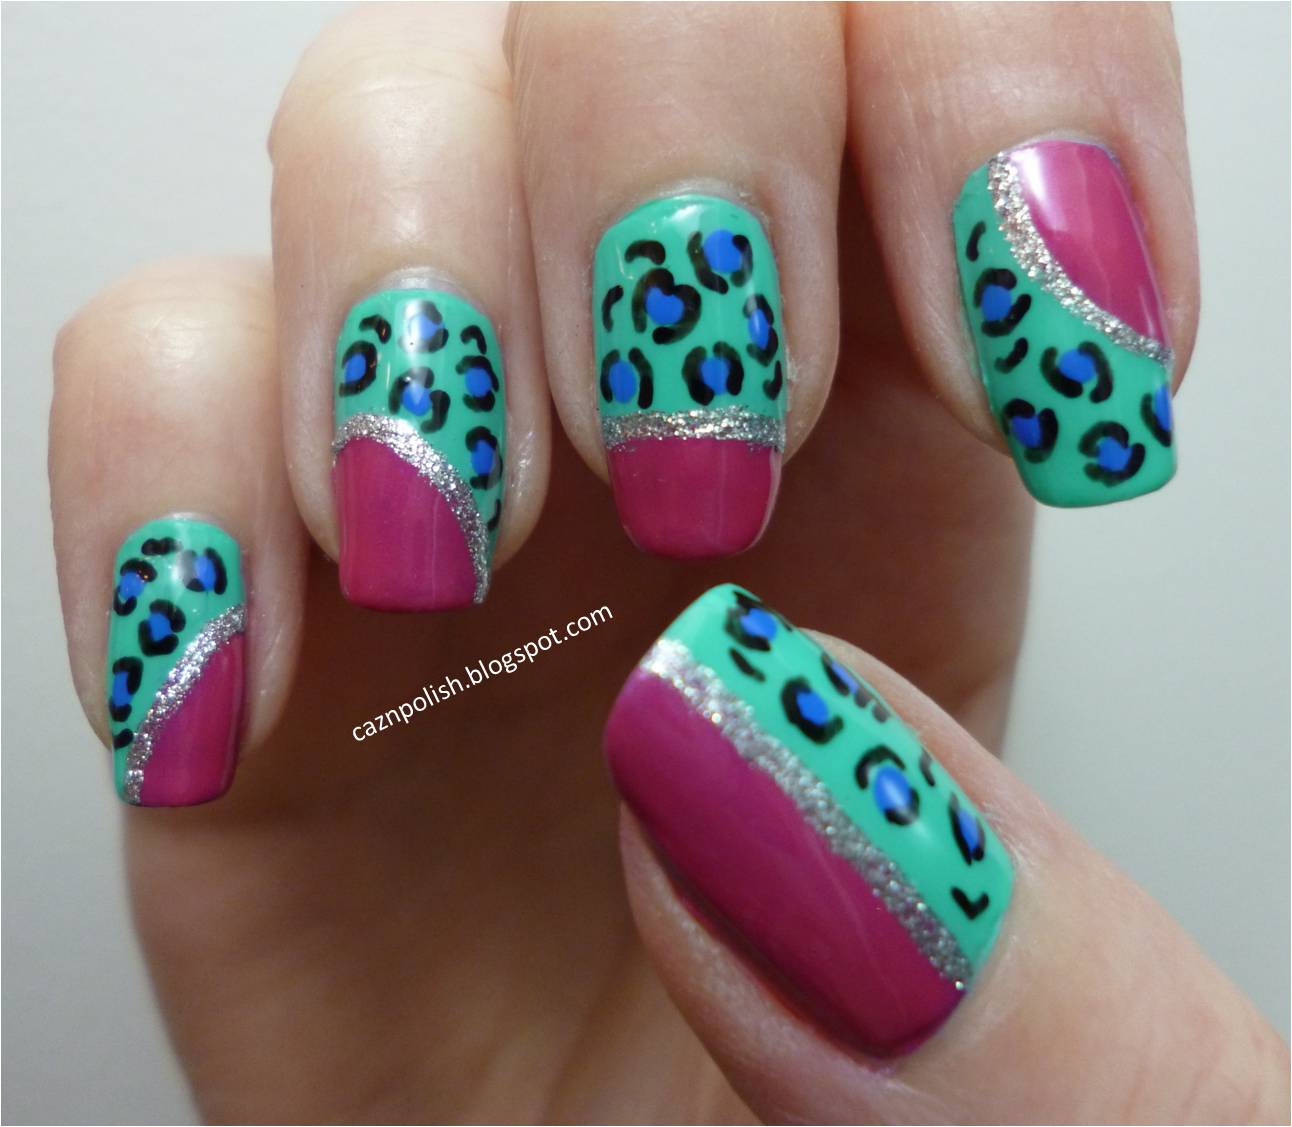 caz 'n' polish | quirky leopard print nails